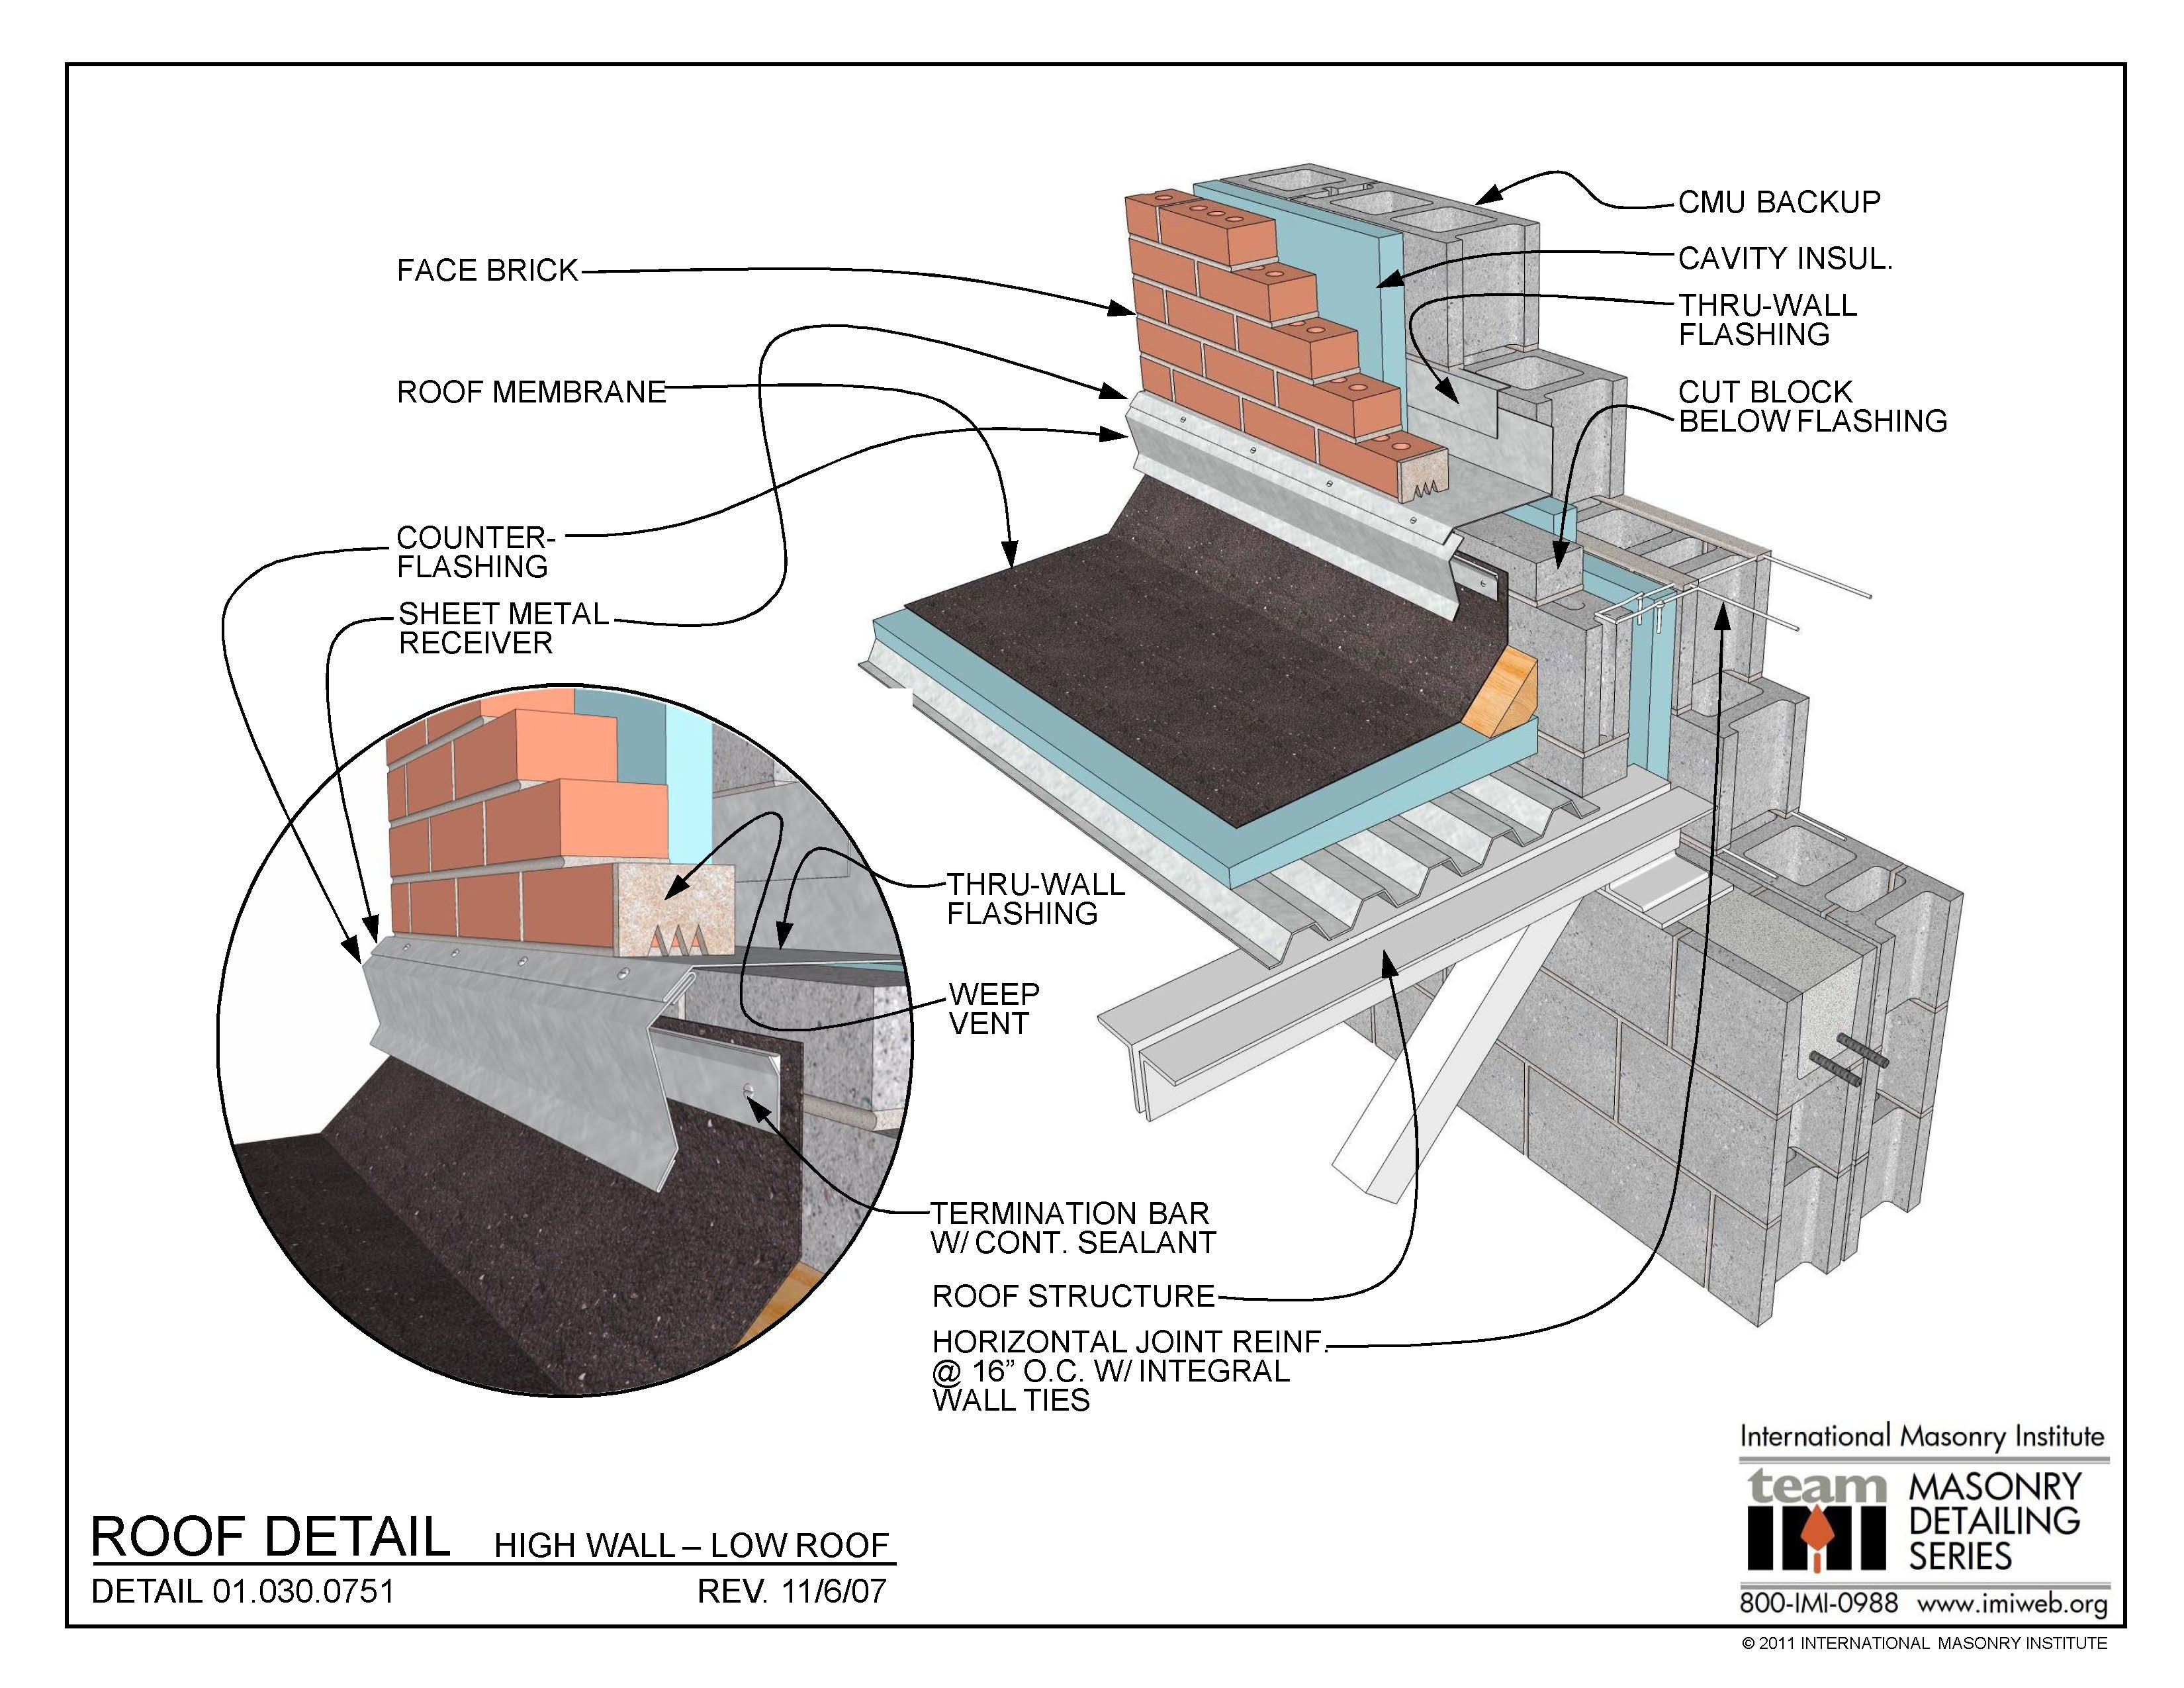 Figure_1A_High_Wall_-_Low_Roof